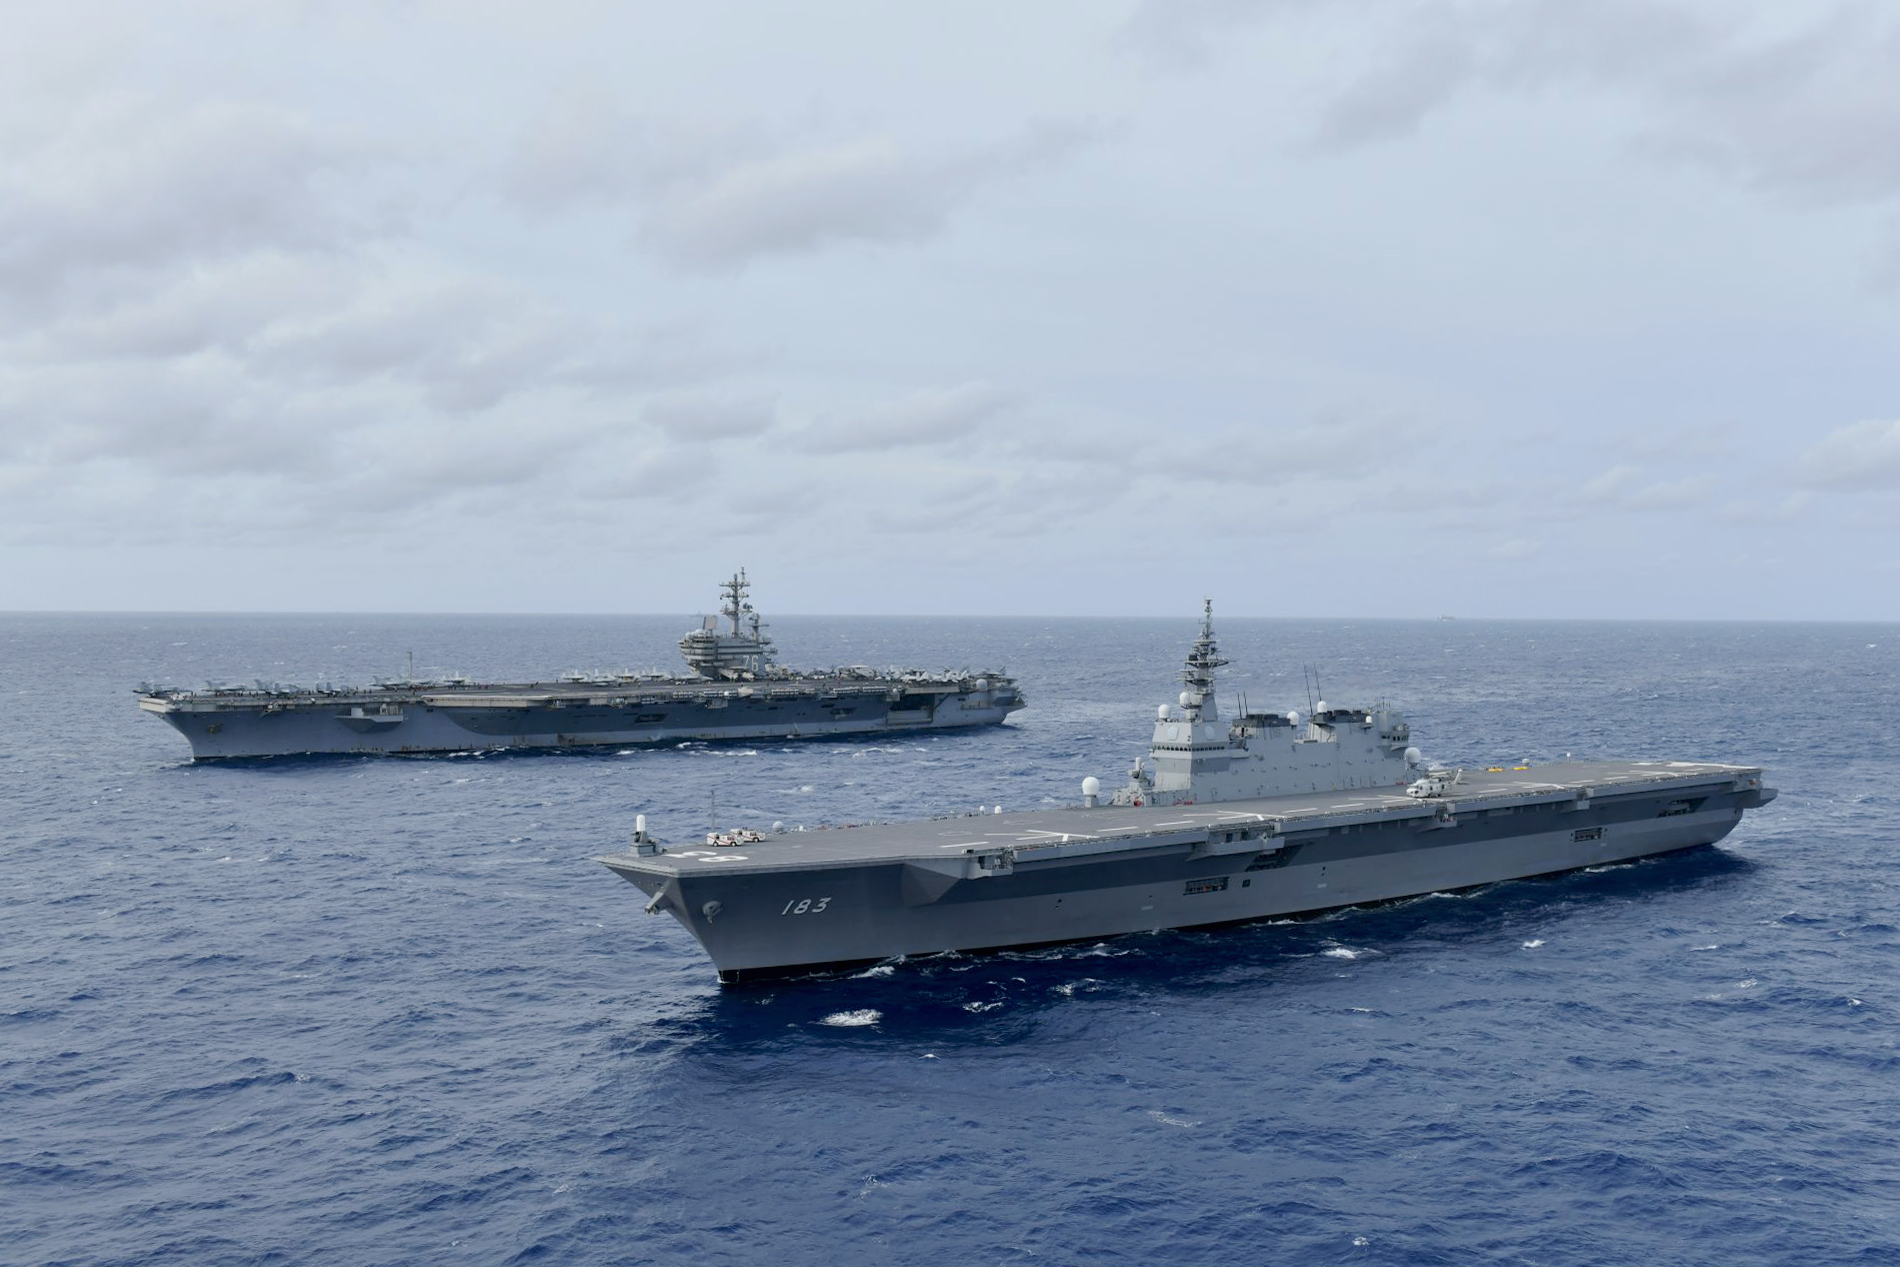 USS Ronald Reagan and JS Izumo sail together in the South China Sea